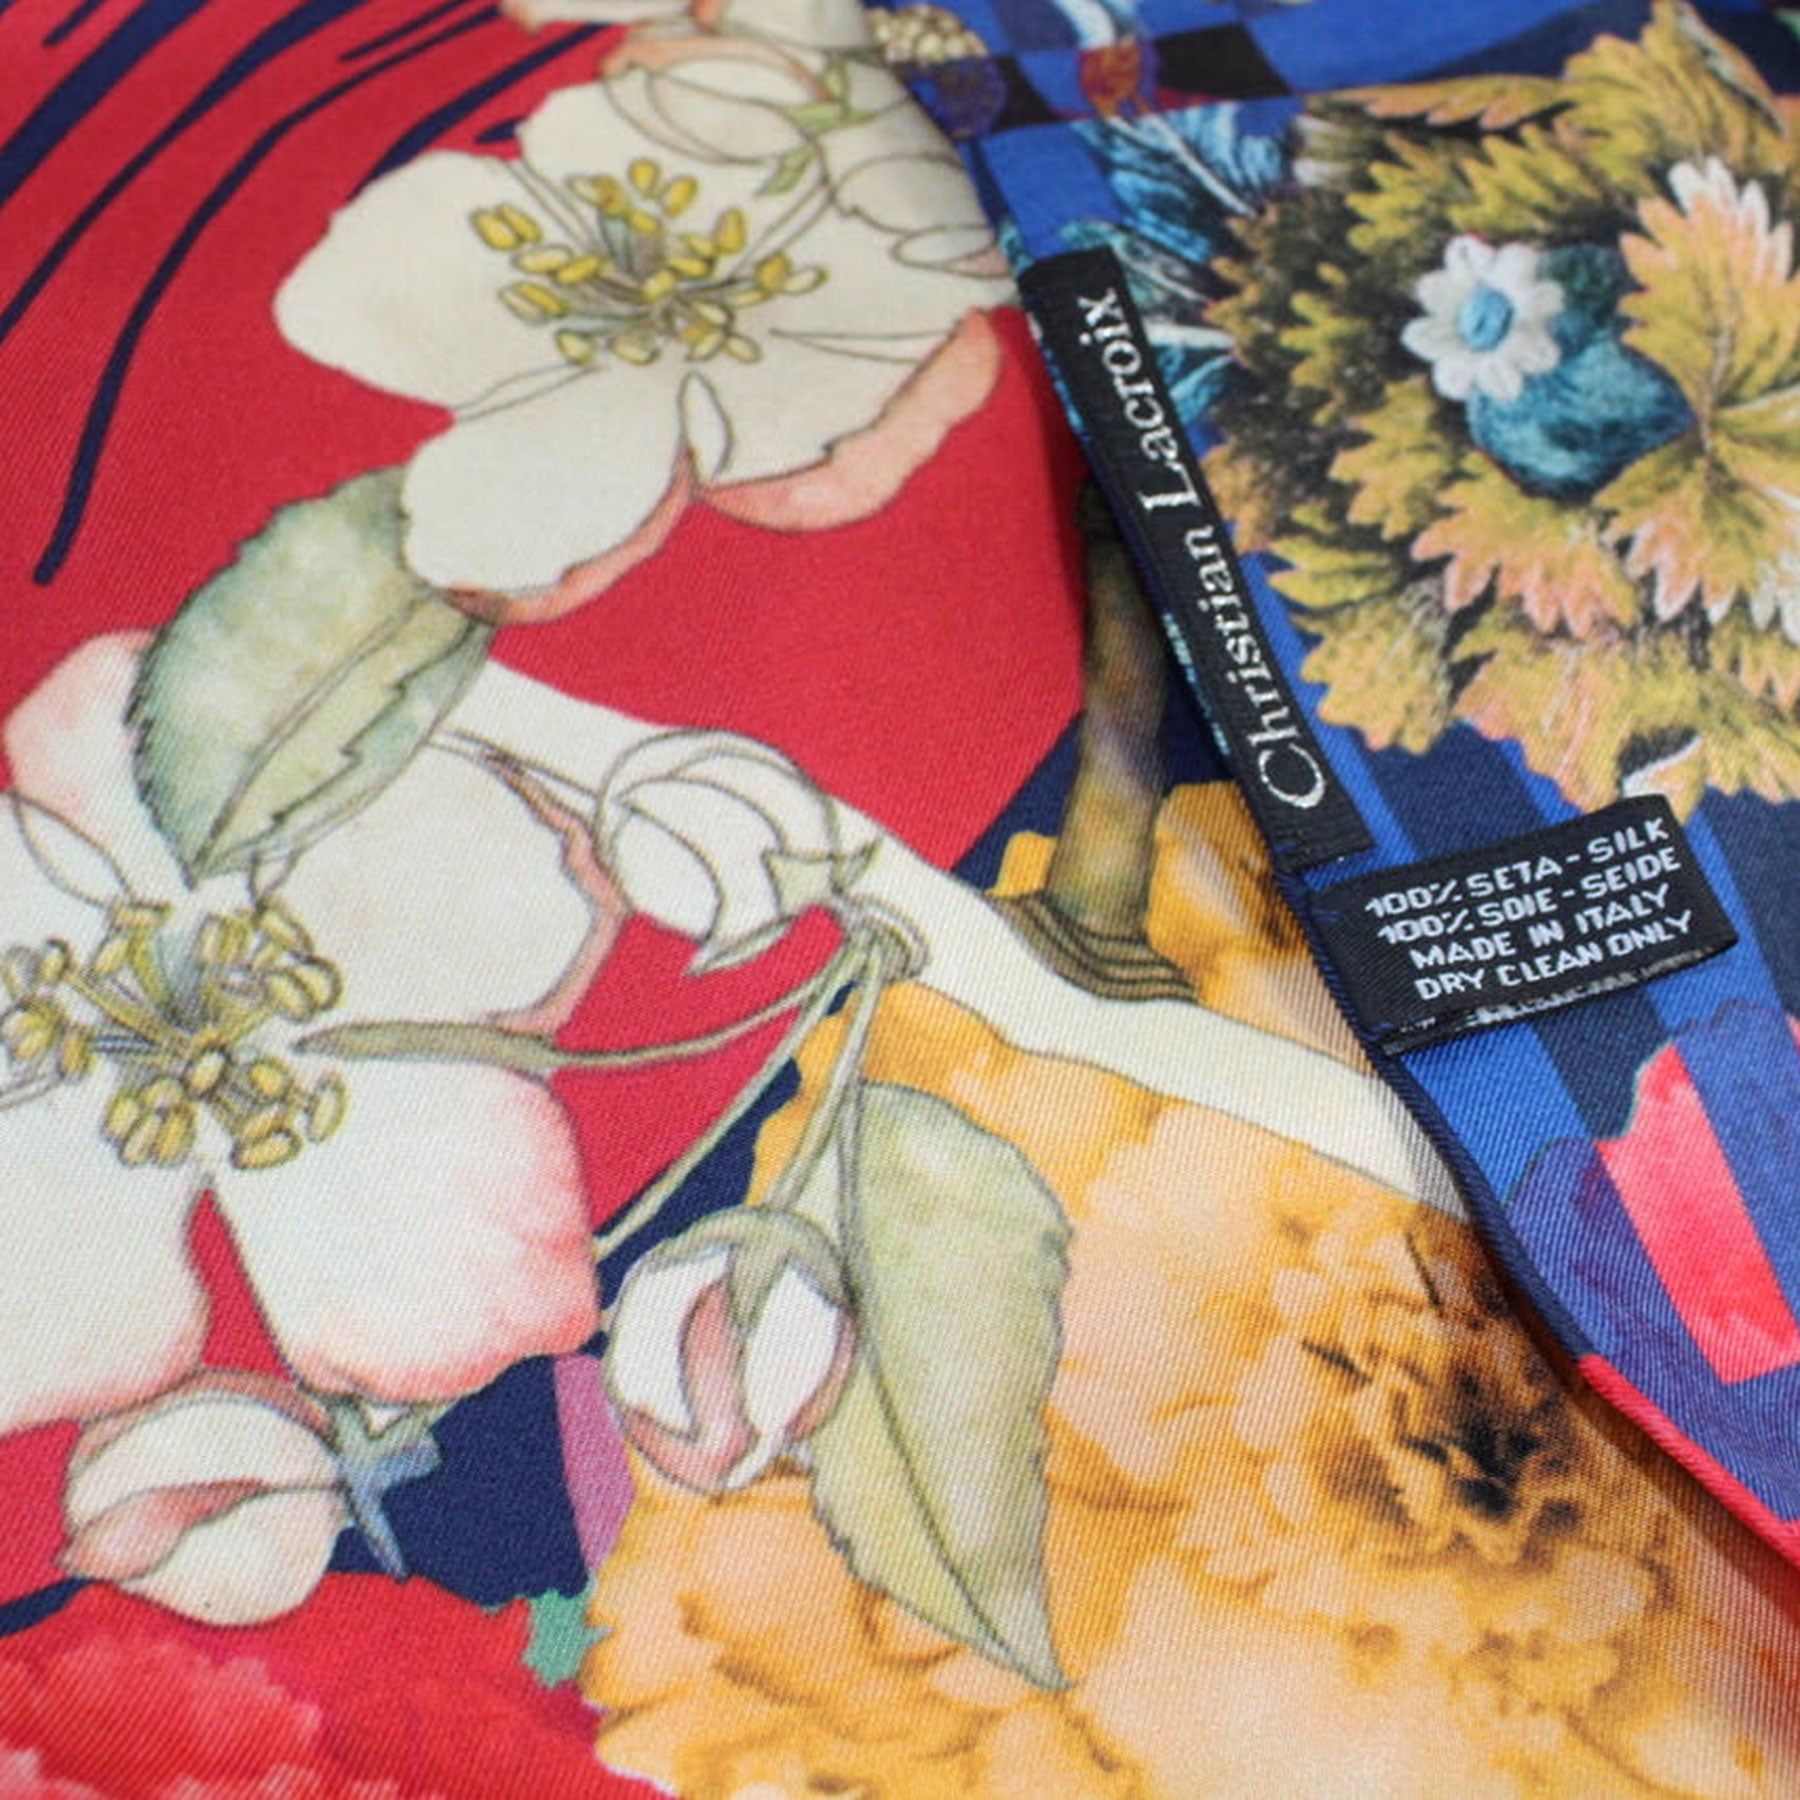 Christian Lacroix Scarf Red Orange Navy Floral - Large Twill Silk Square Scarf